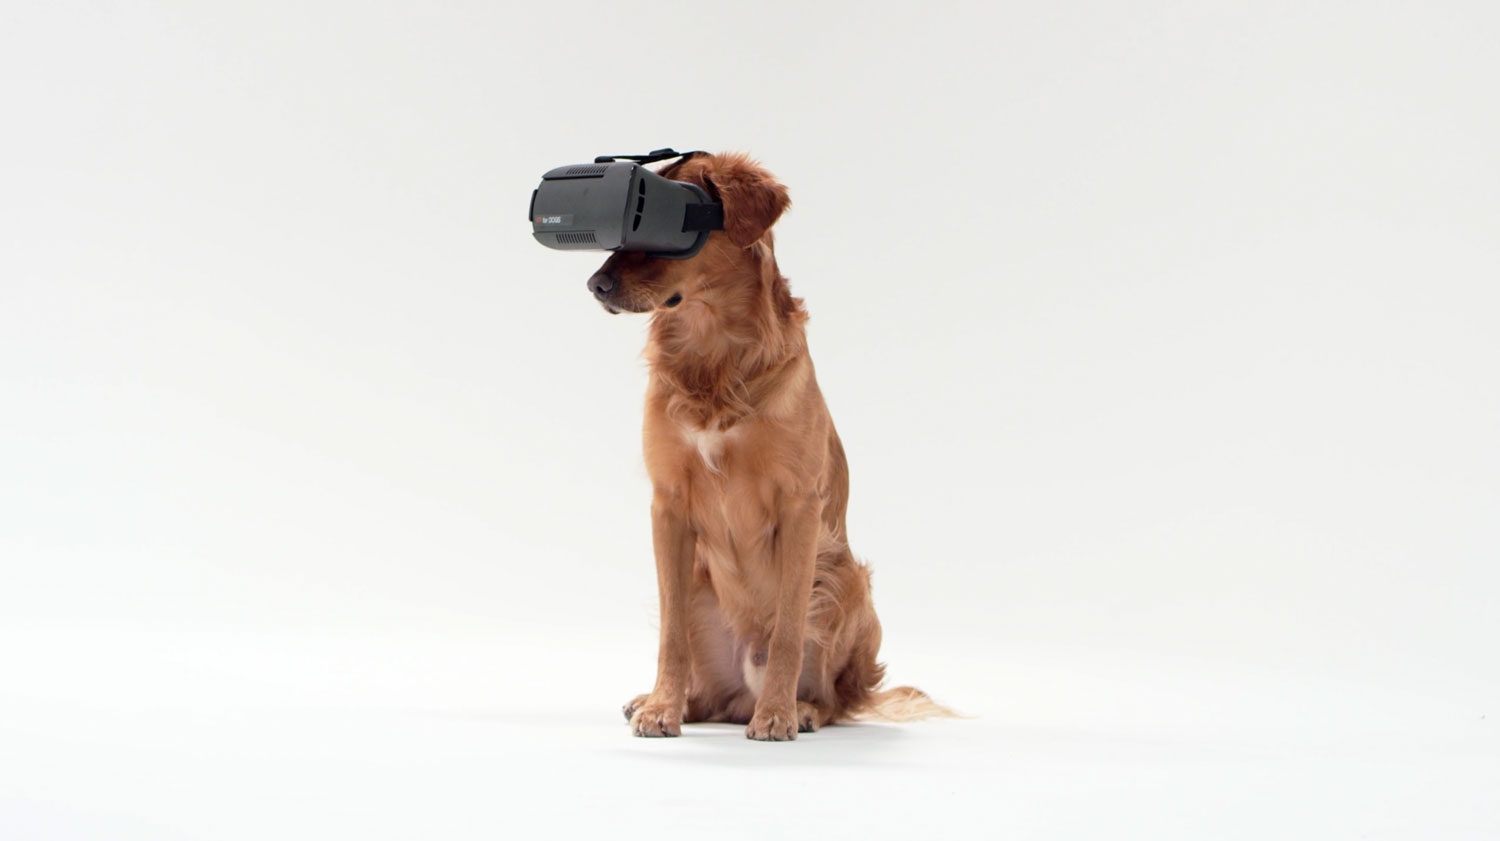 Applied Art 'Embarks' On New Venture: VR for Dogs